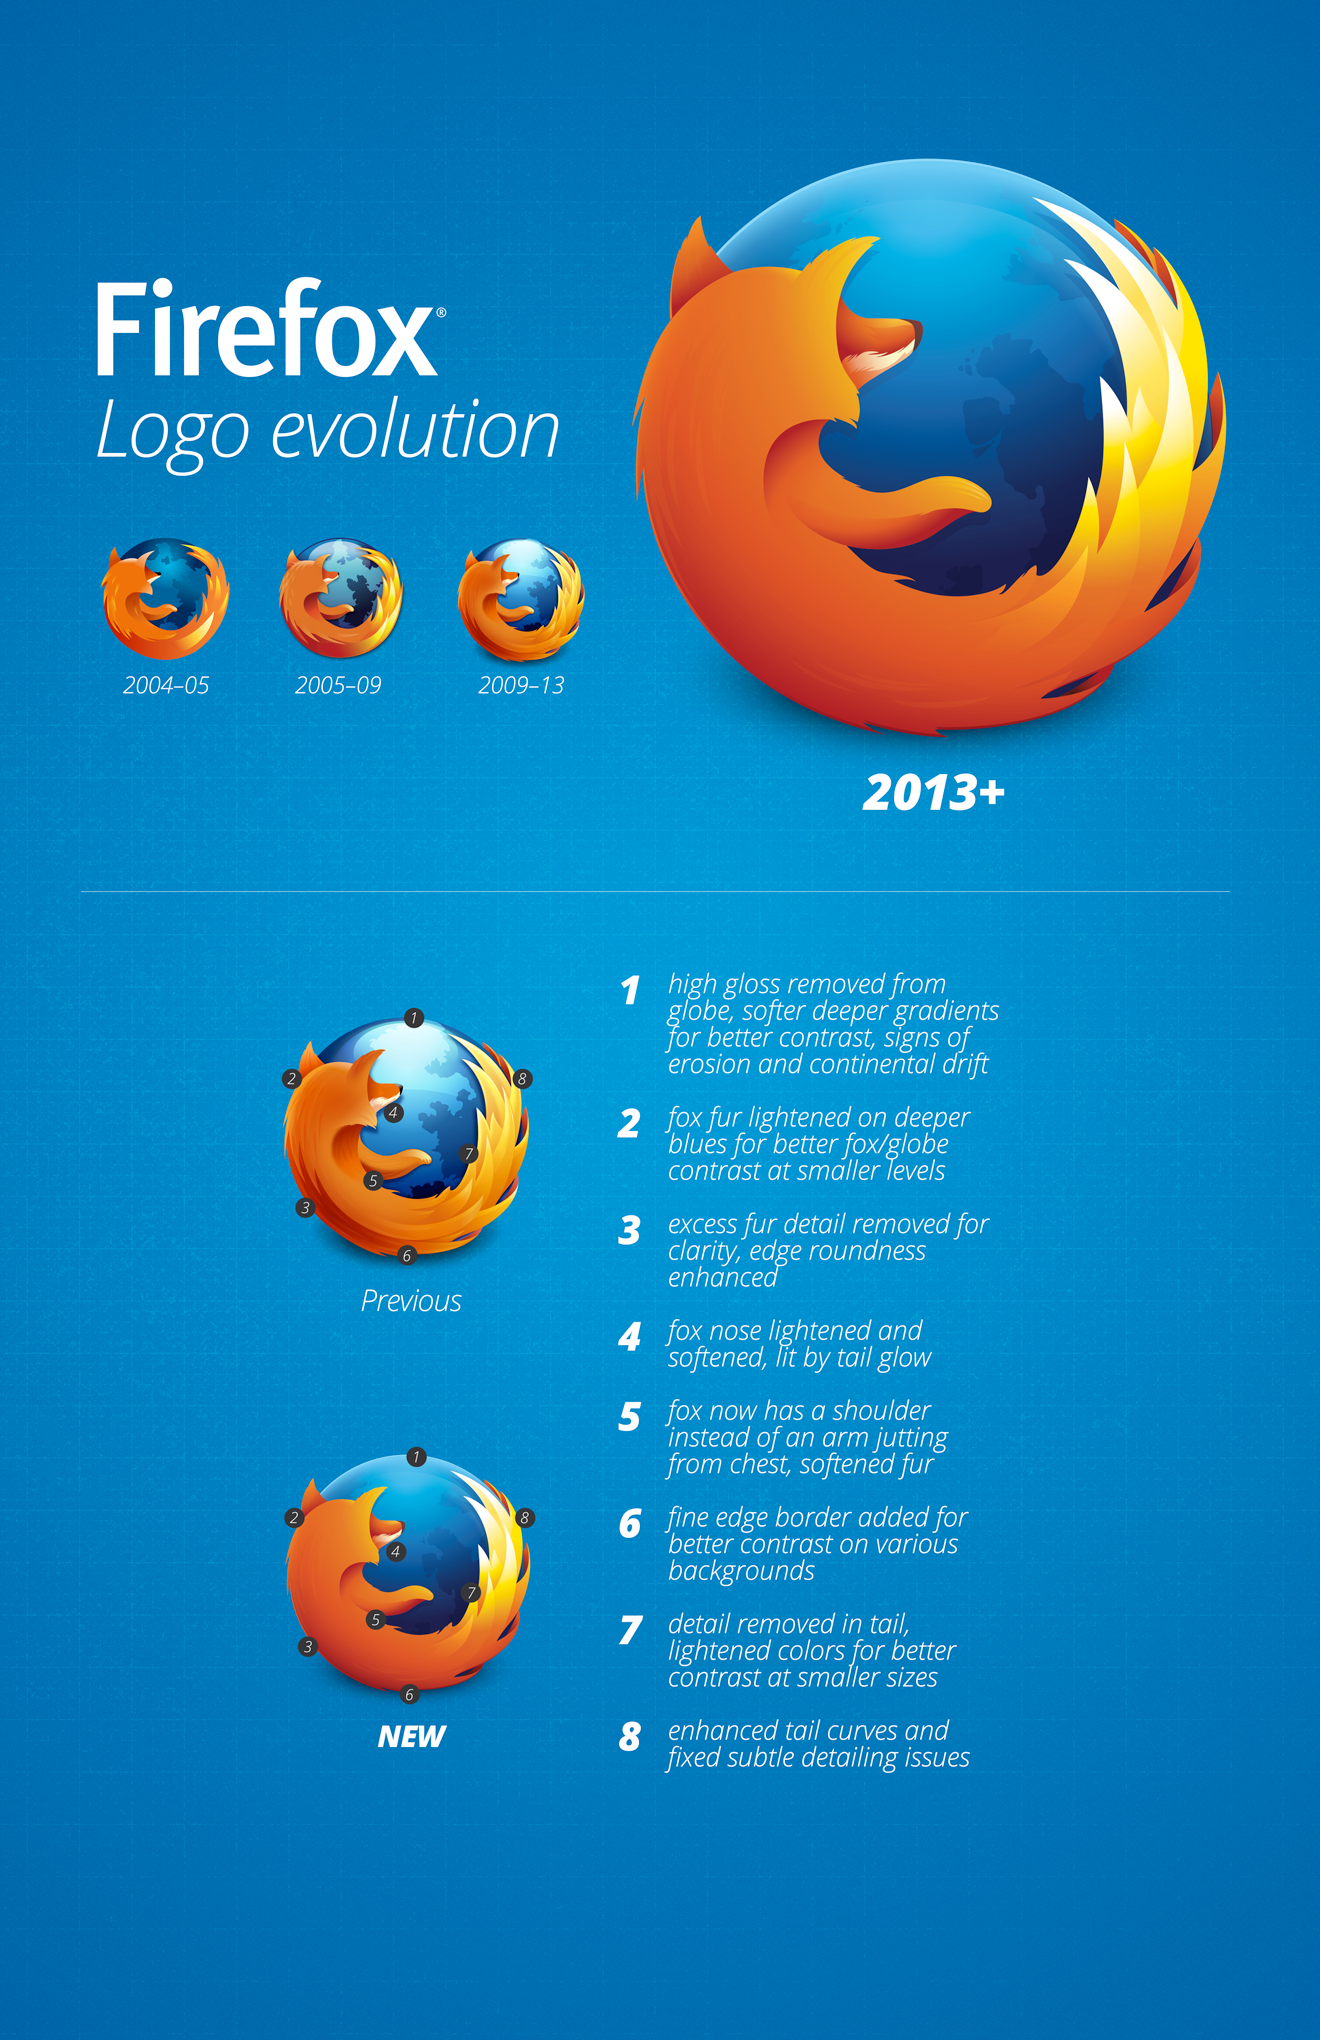 A New Firefox Logo for a New Firefox Era.